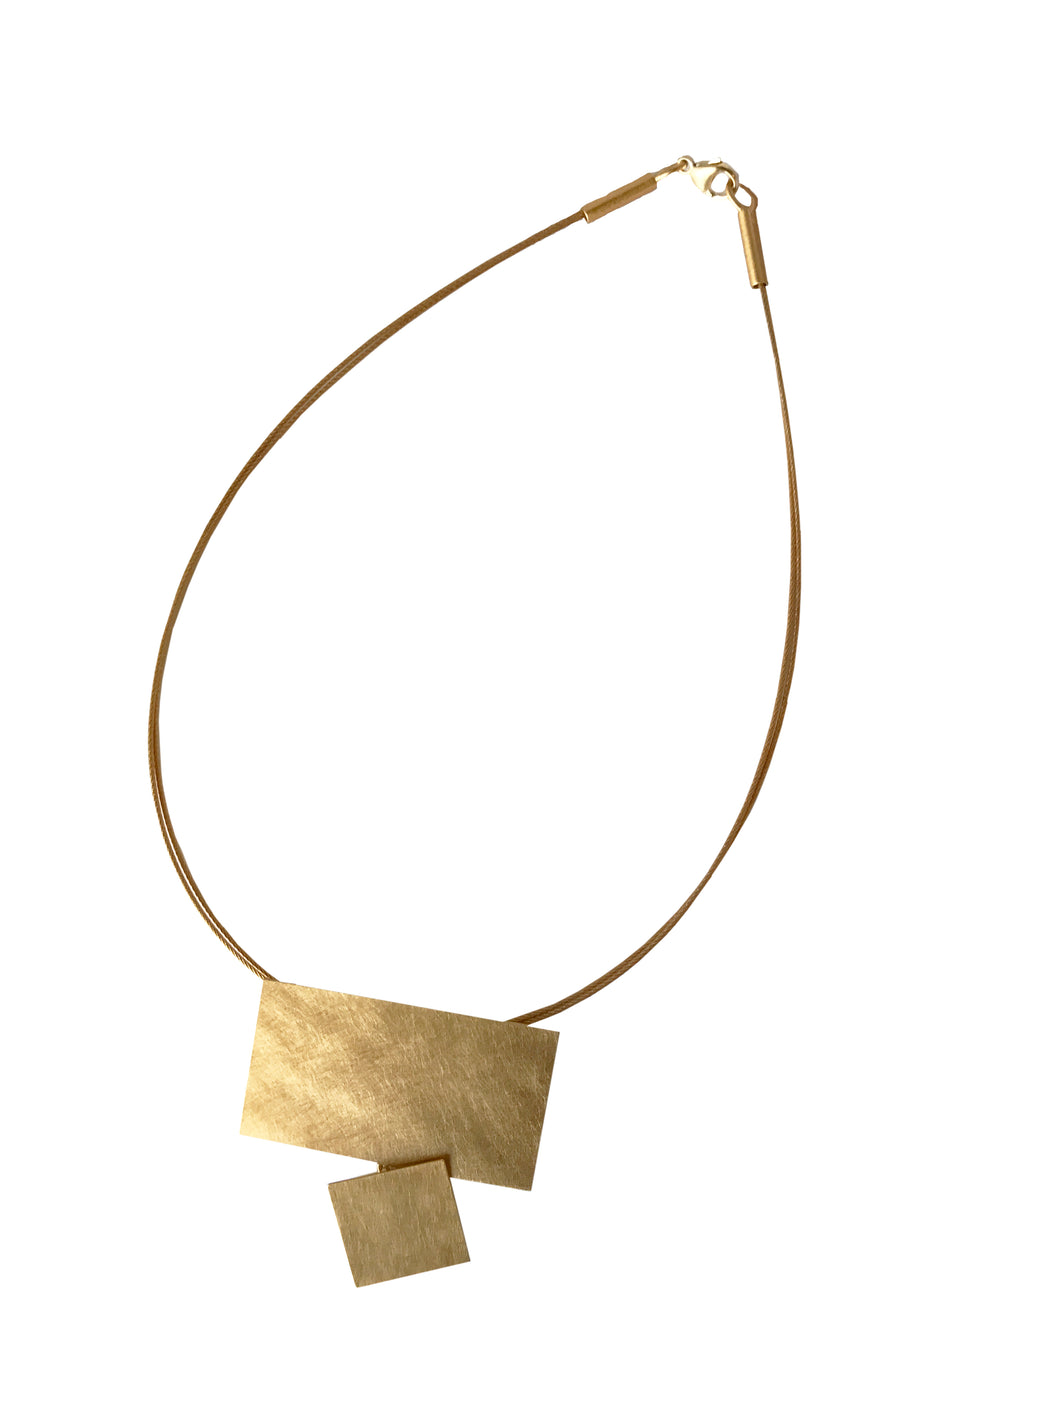 Petra Meiren Steel and Square Gold Necklace